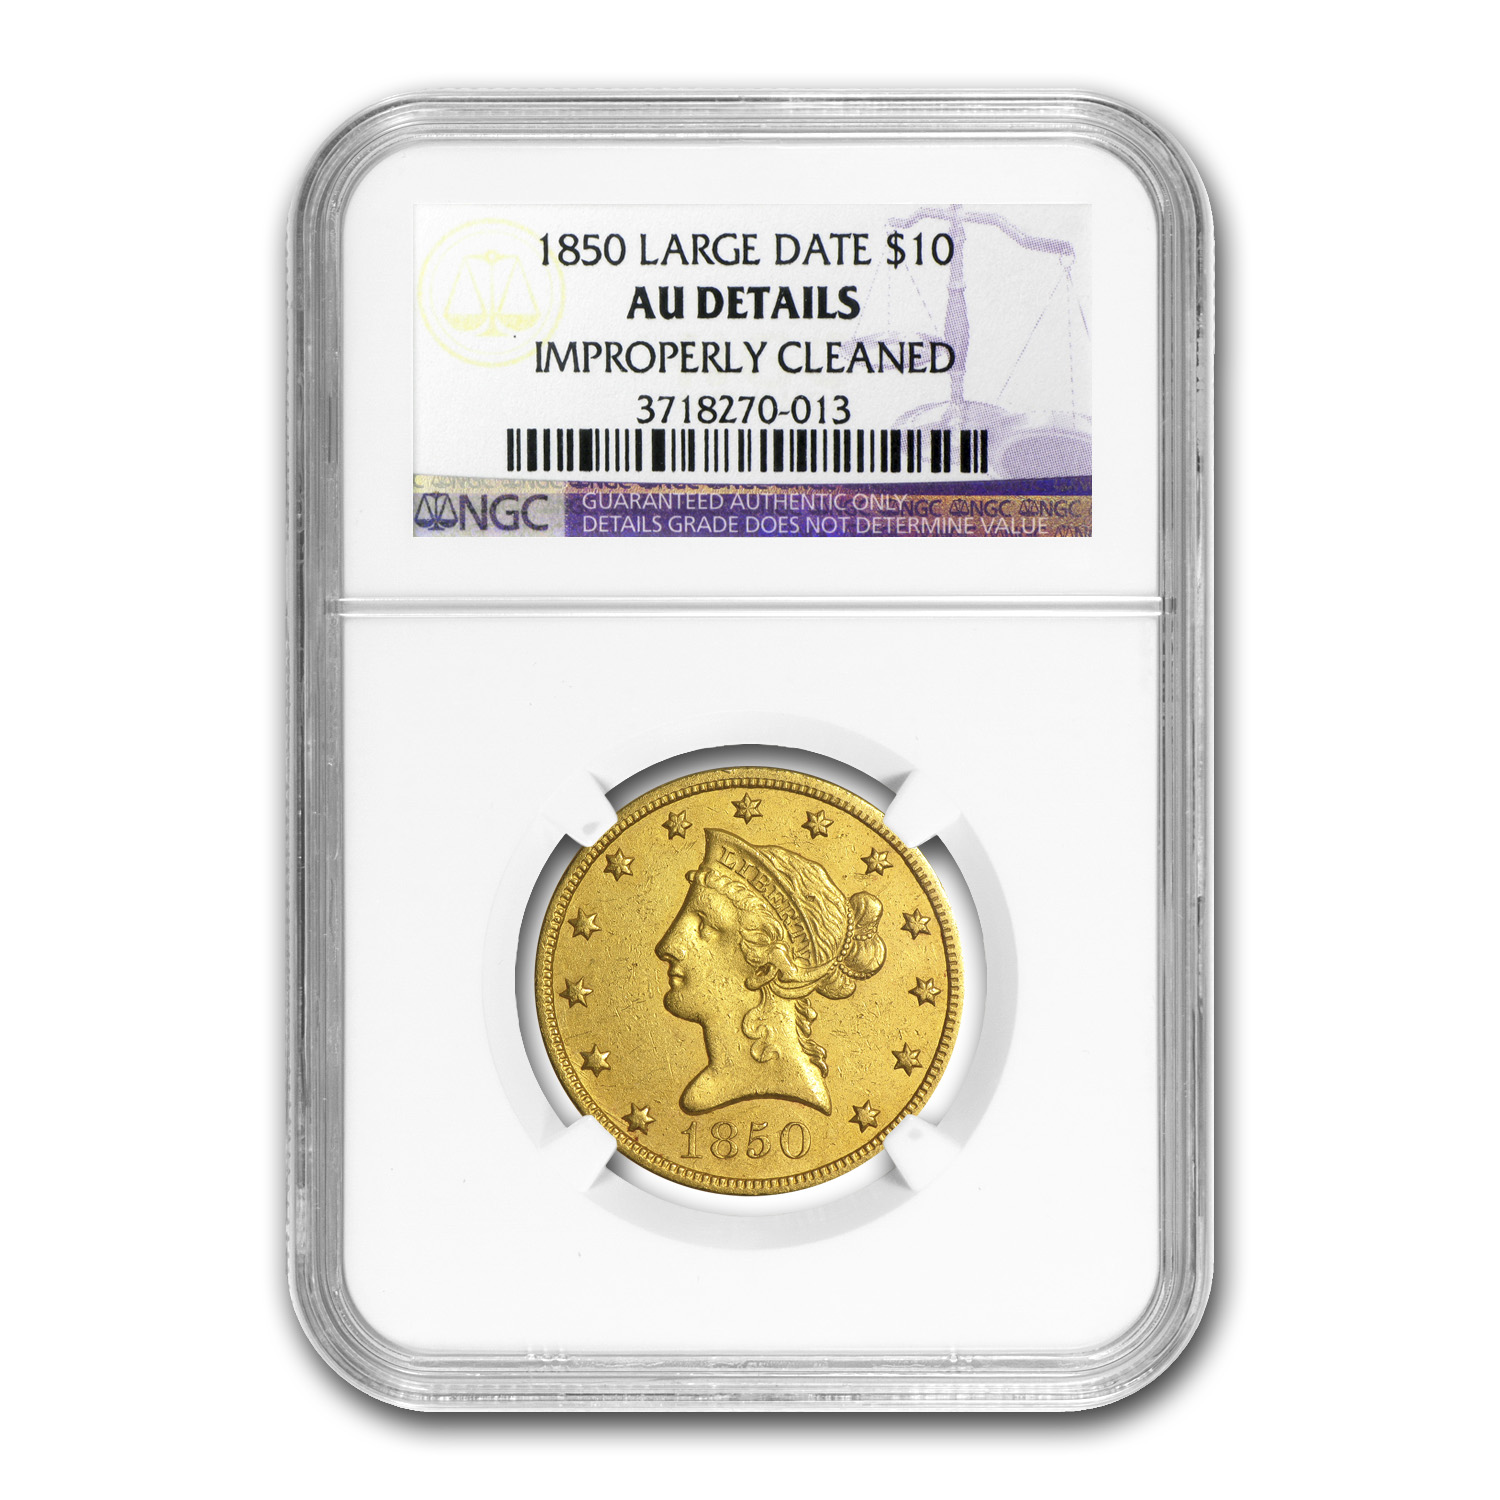 1850 $10 Liberty Gold Eagle Large Date AU Details NGC